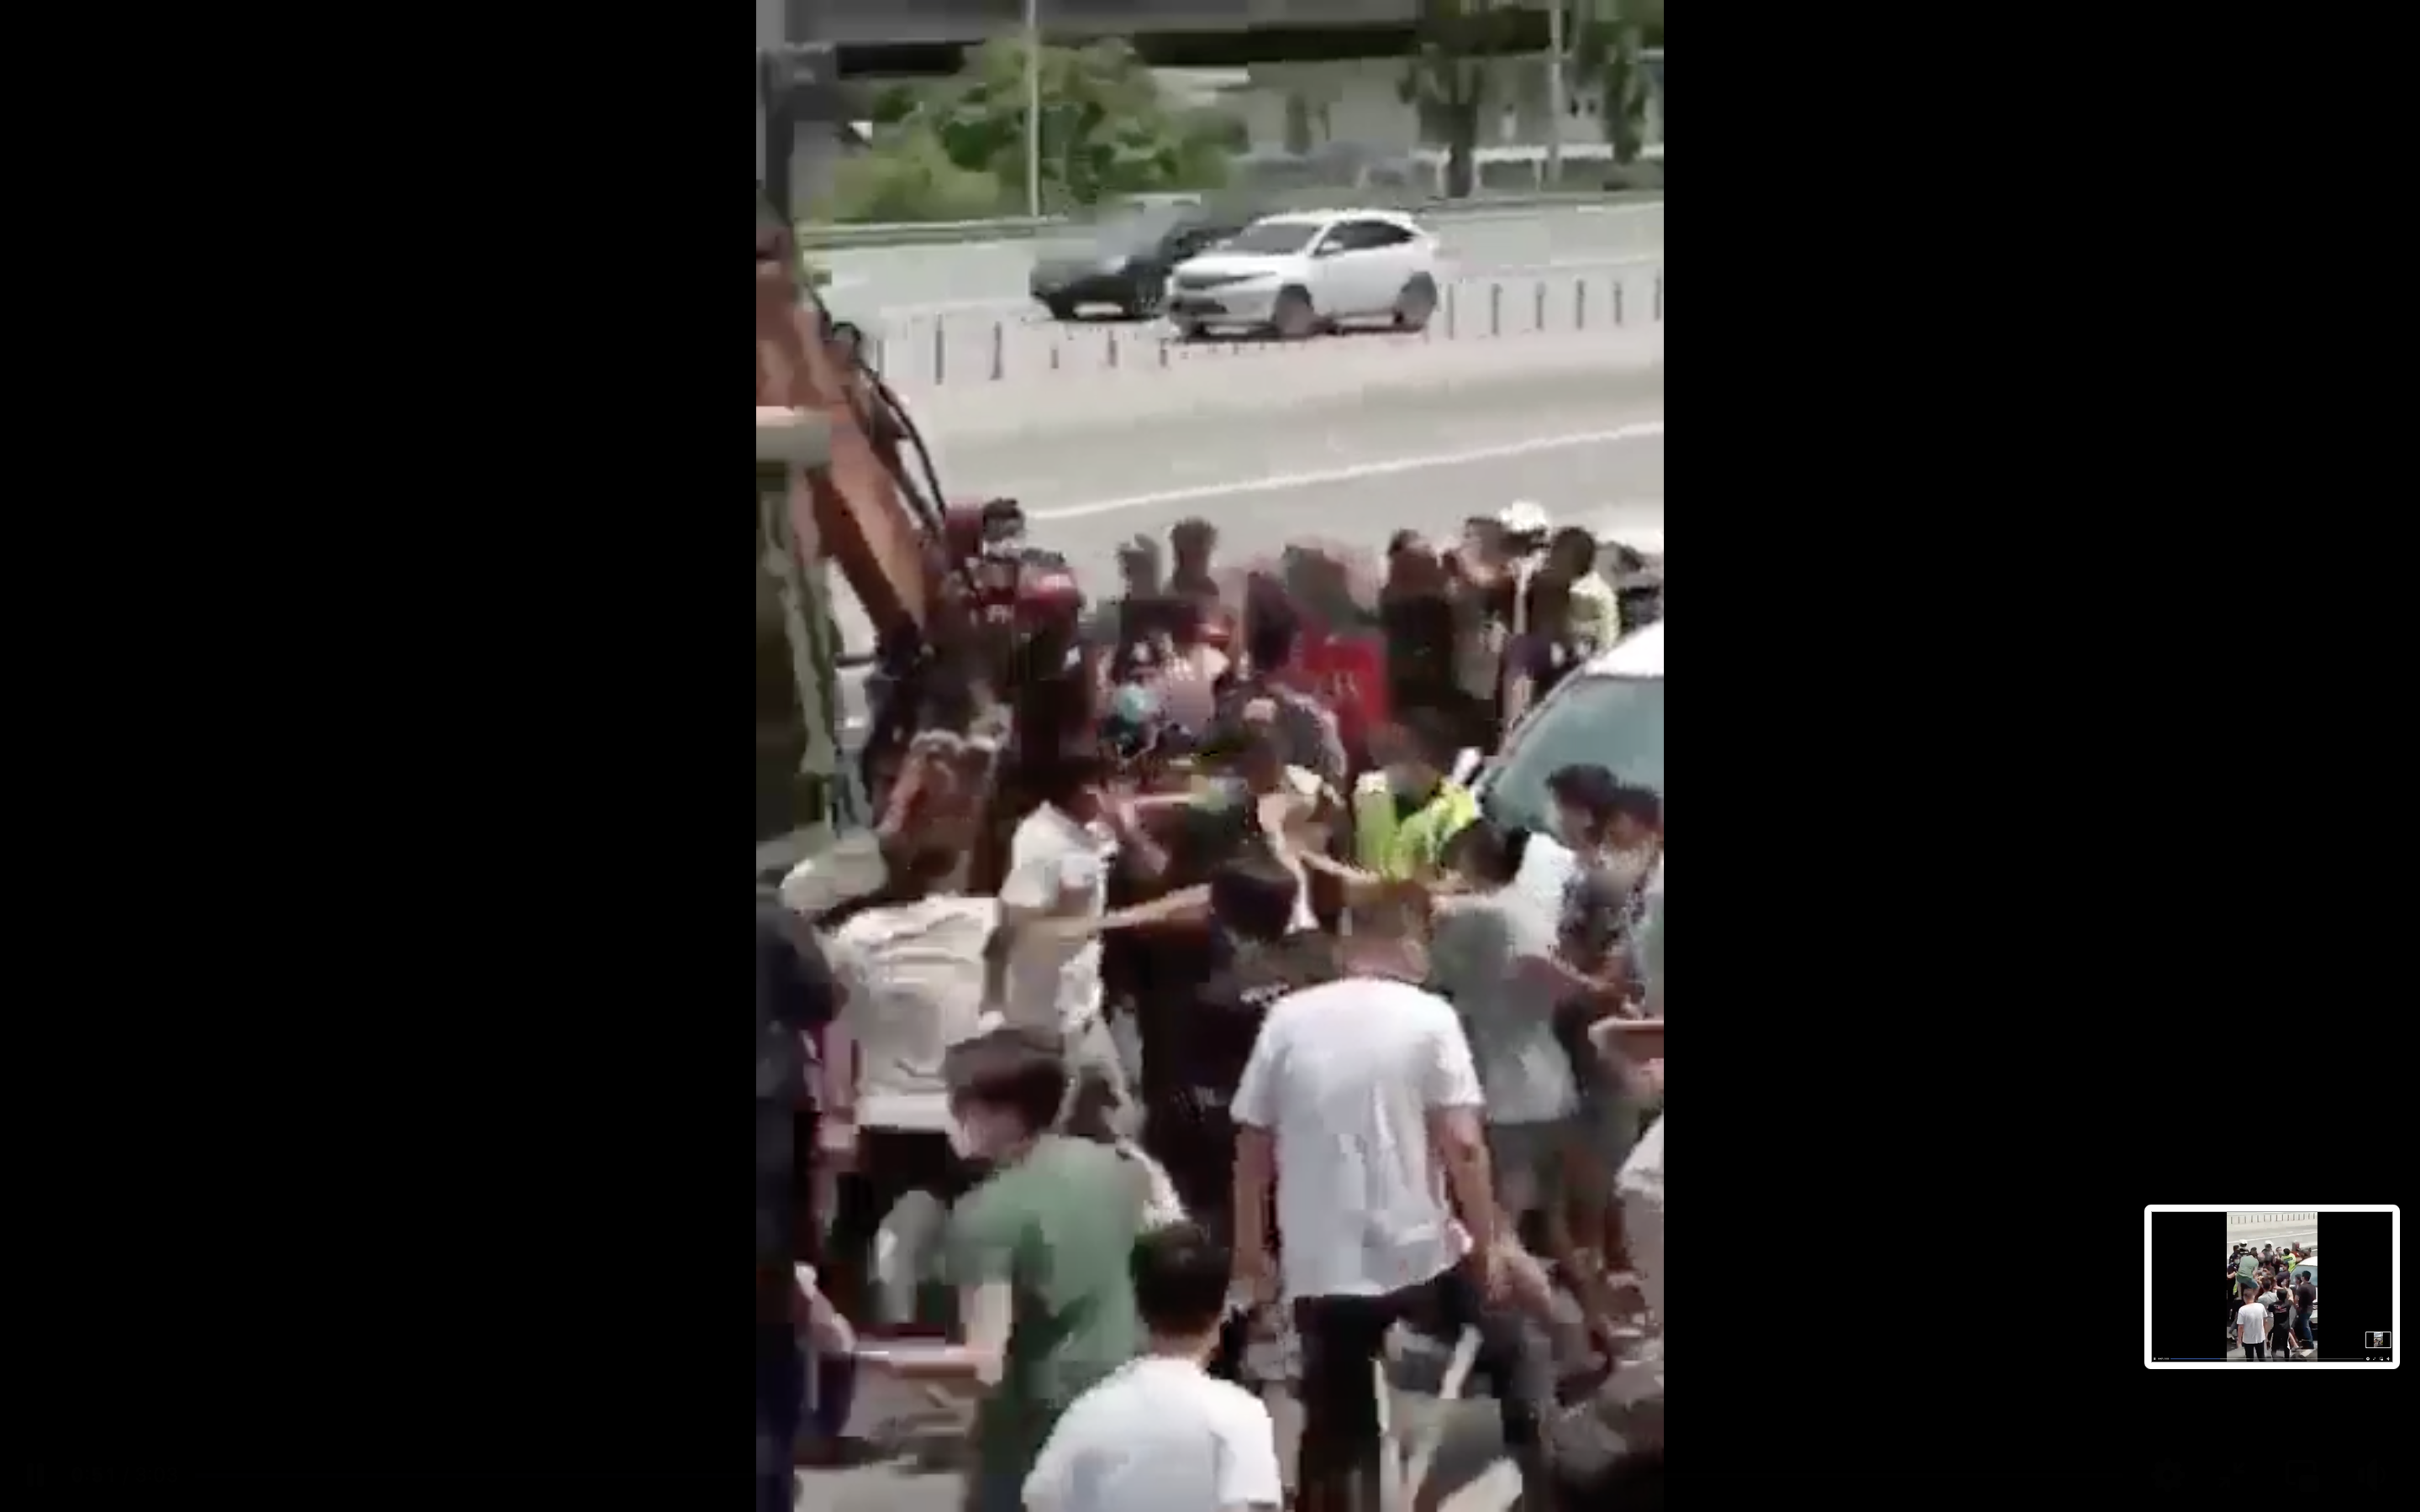 Huge fight erupts over temple demolition at salak south, leading to 2 injuries and 2 arrests